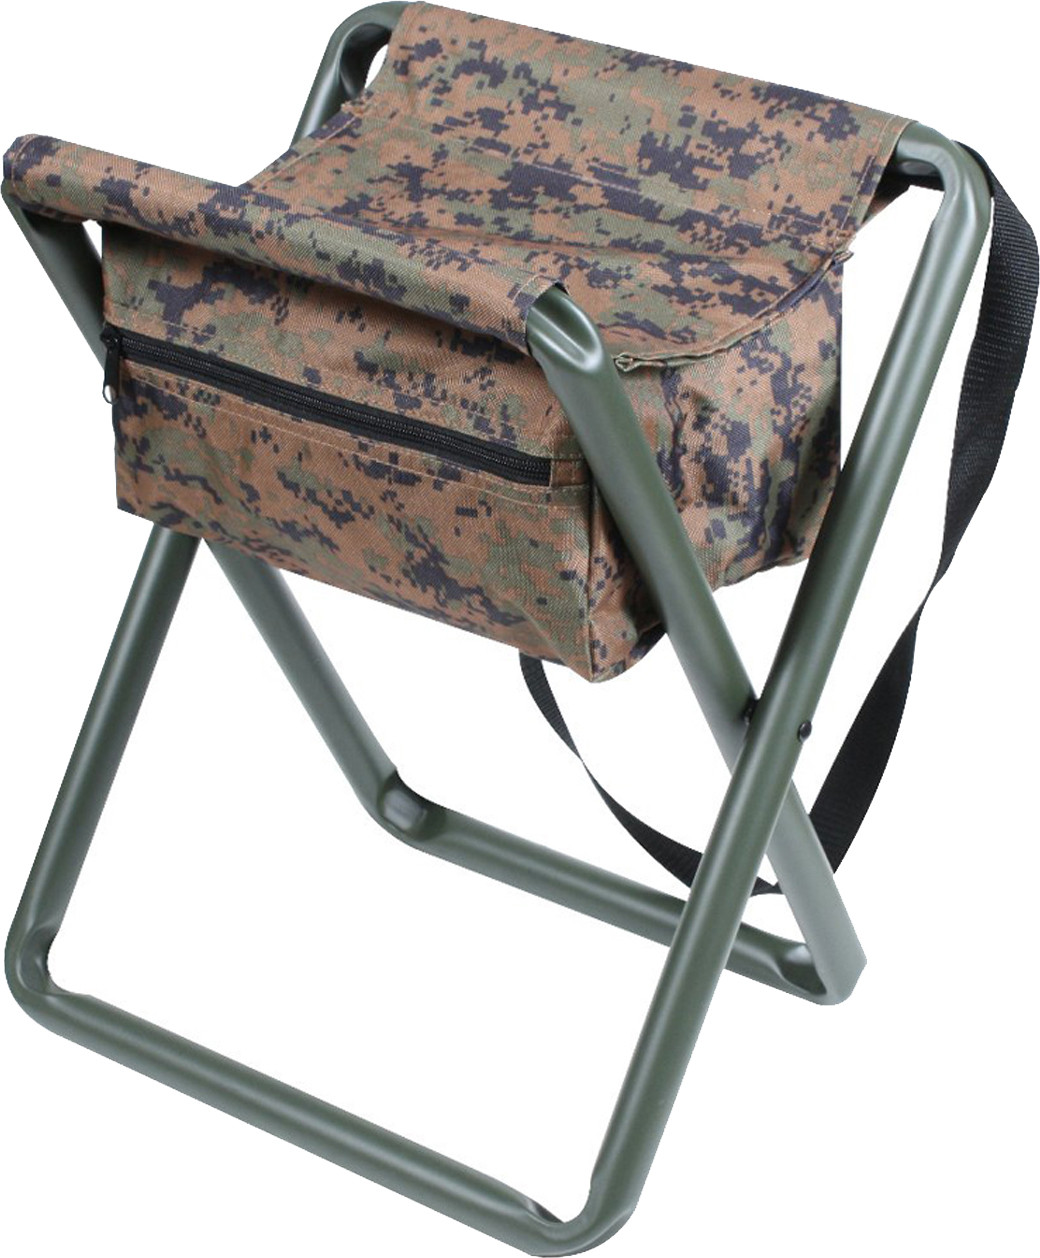 Camo Folding Chair Woodland Digital Camouflage Portable Folding Deluxe Stool